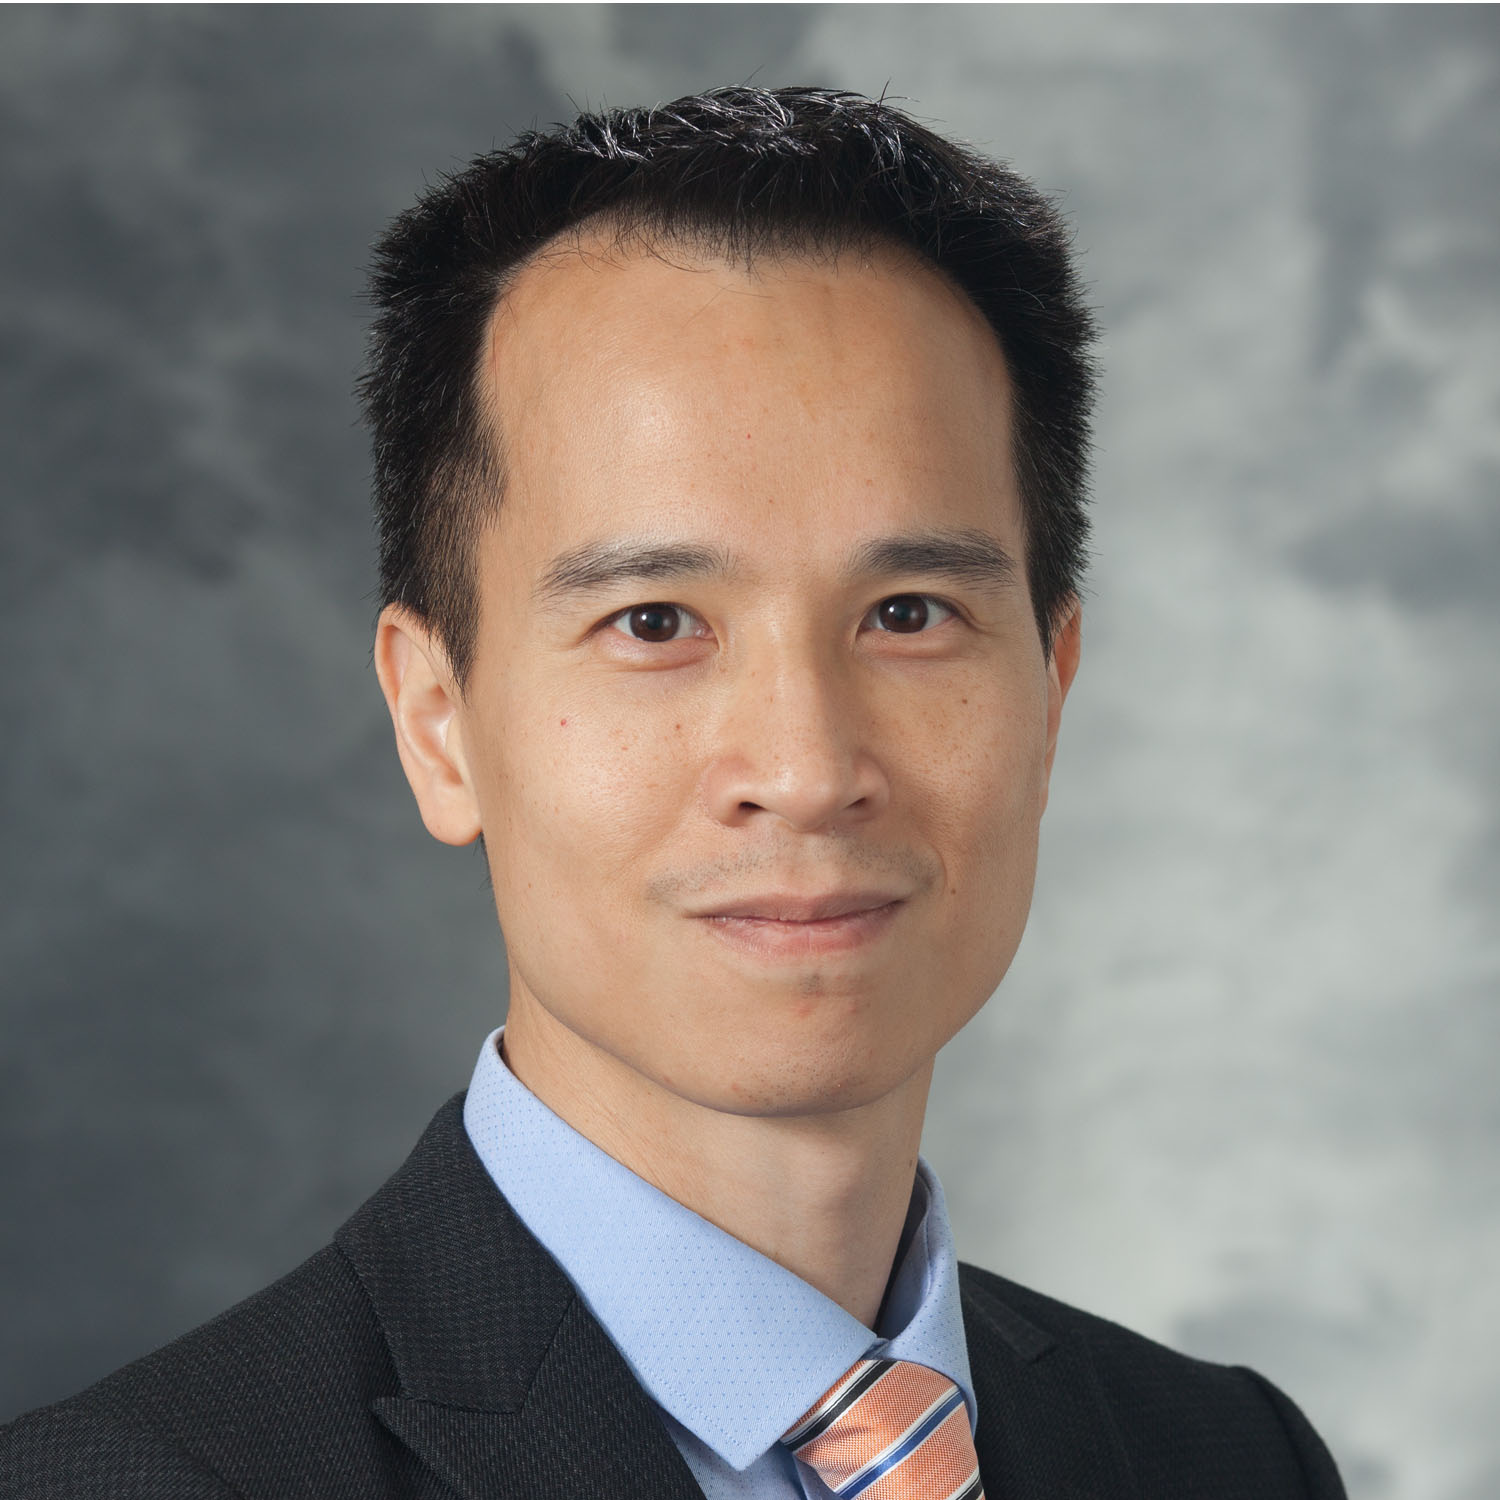 Picture of Joseph Tang, MD